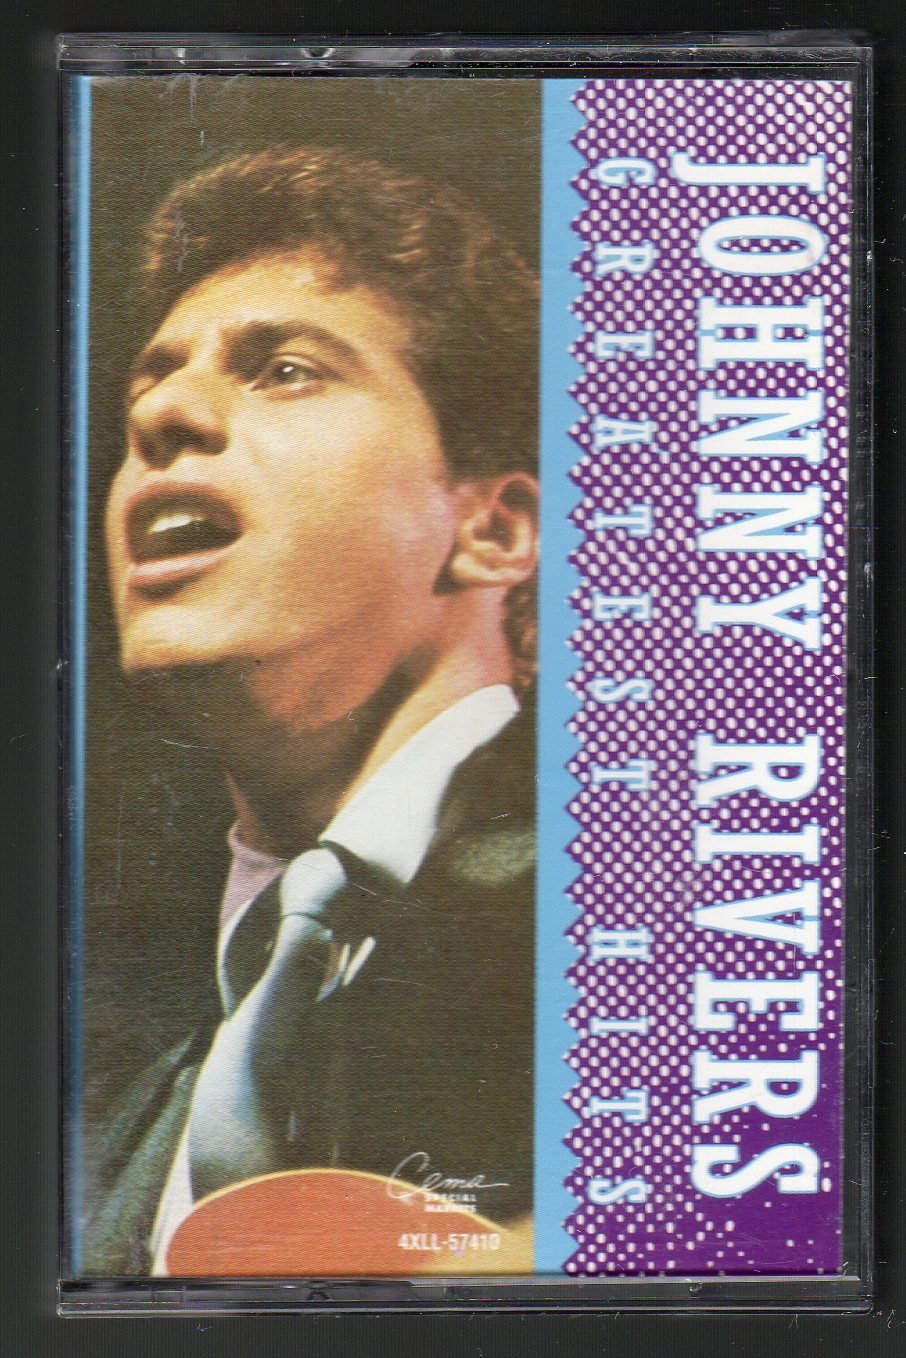 Johnny Rivers - Greatest Hits C3 Cassette Tape